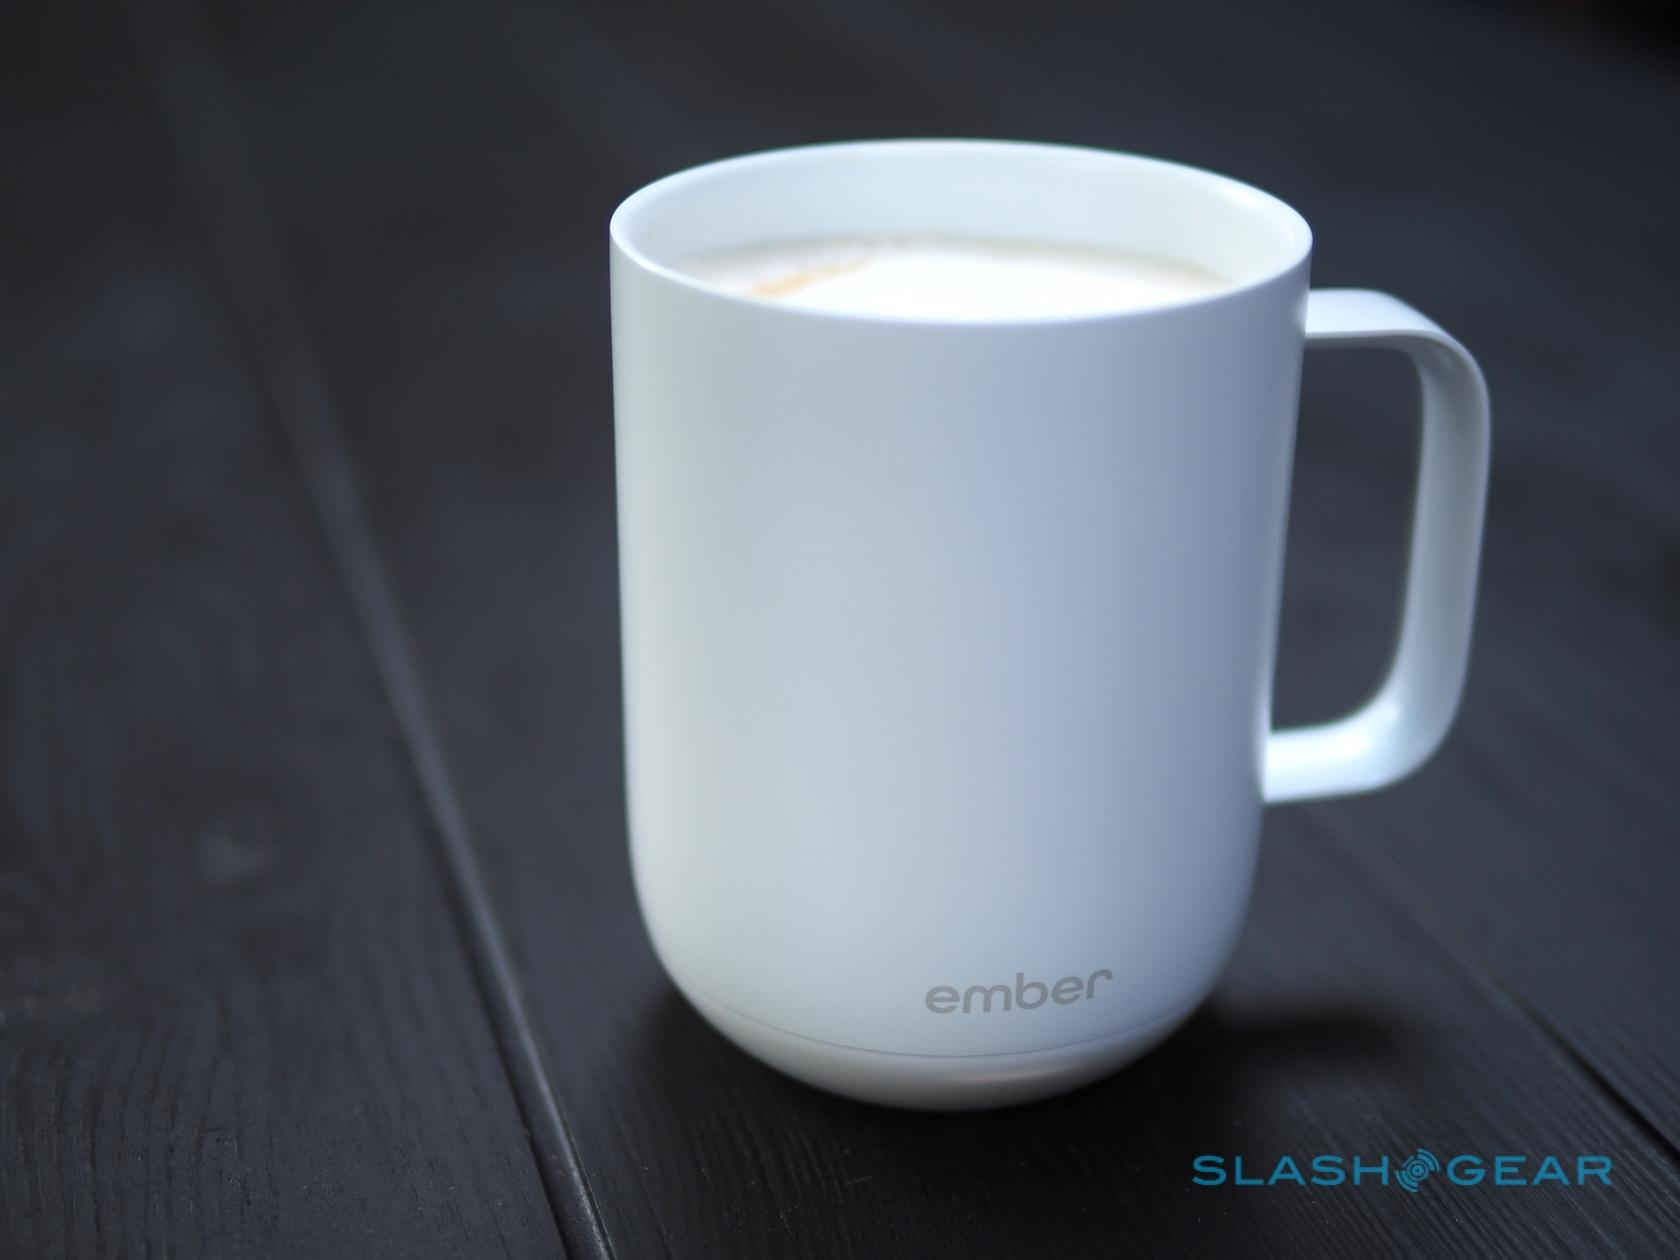 20afbf57b79 Ember Ceramic Smart Mug Review: IoT for your coffee - SlashGear